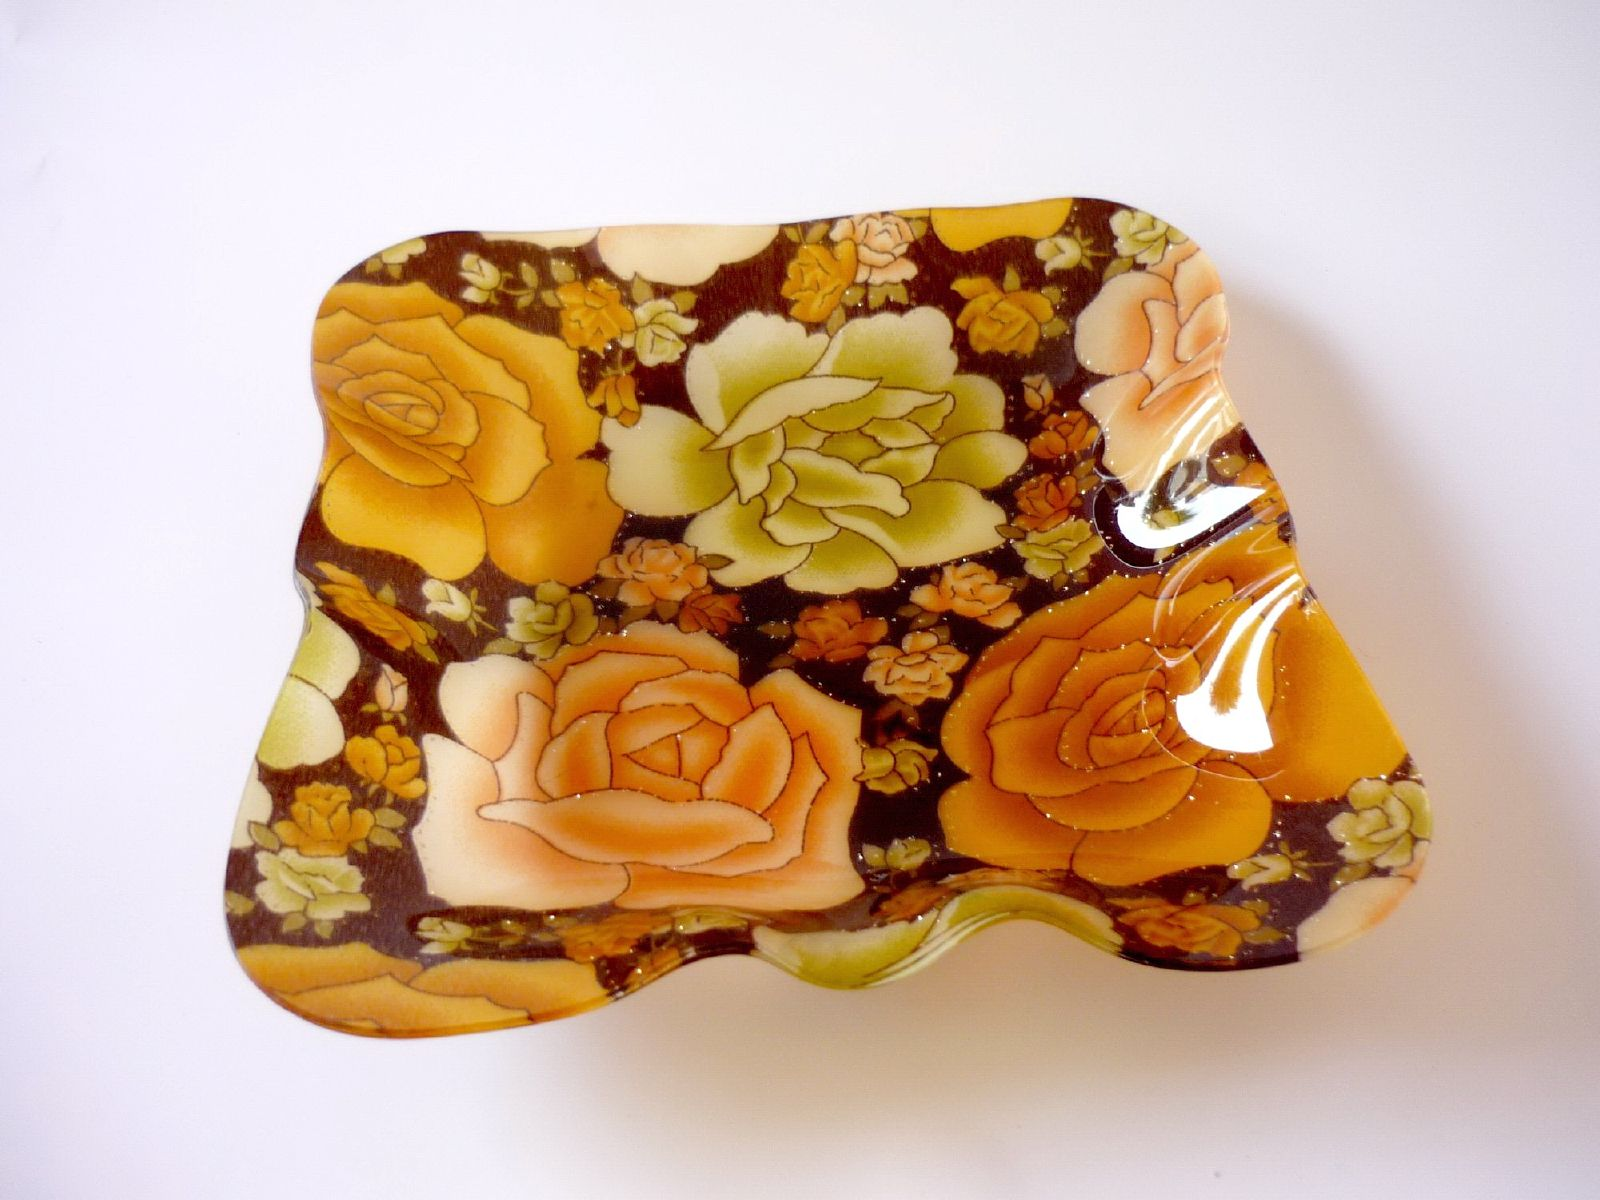 Tray, Plate, Roses, Plastic, Yellow, HQ Photo